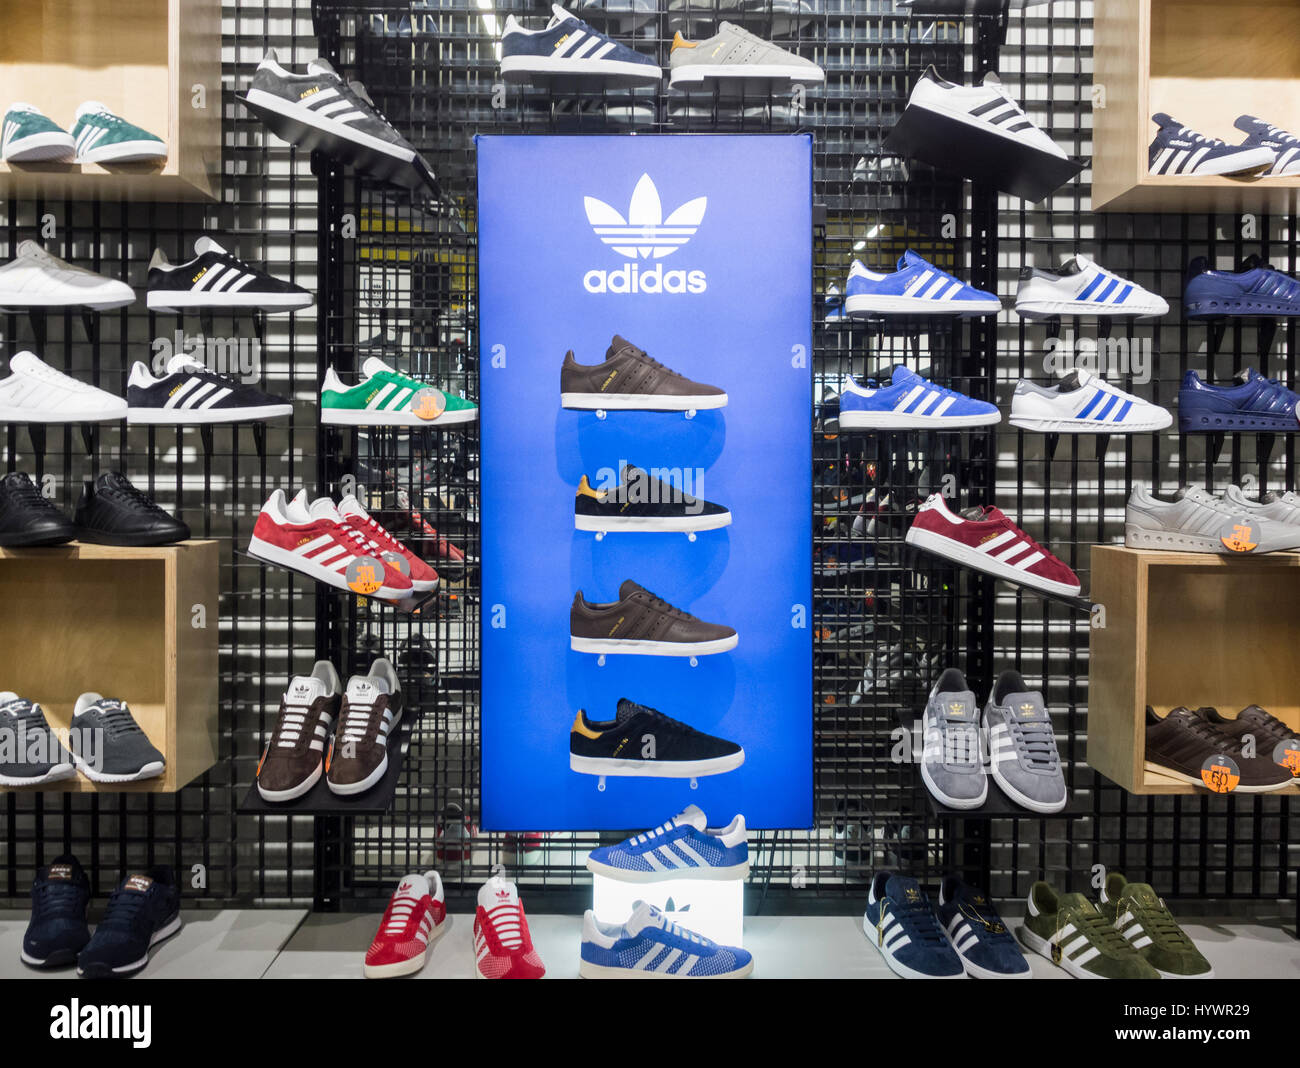 Adidas Running Shoes Jd Sports